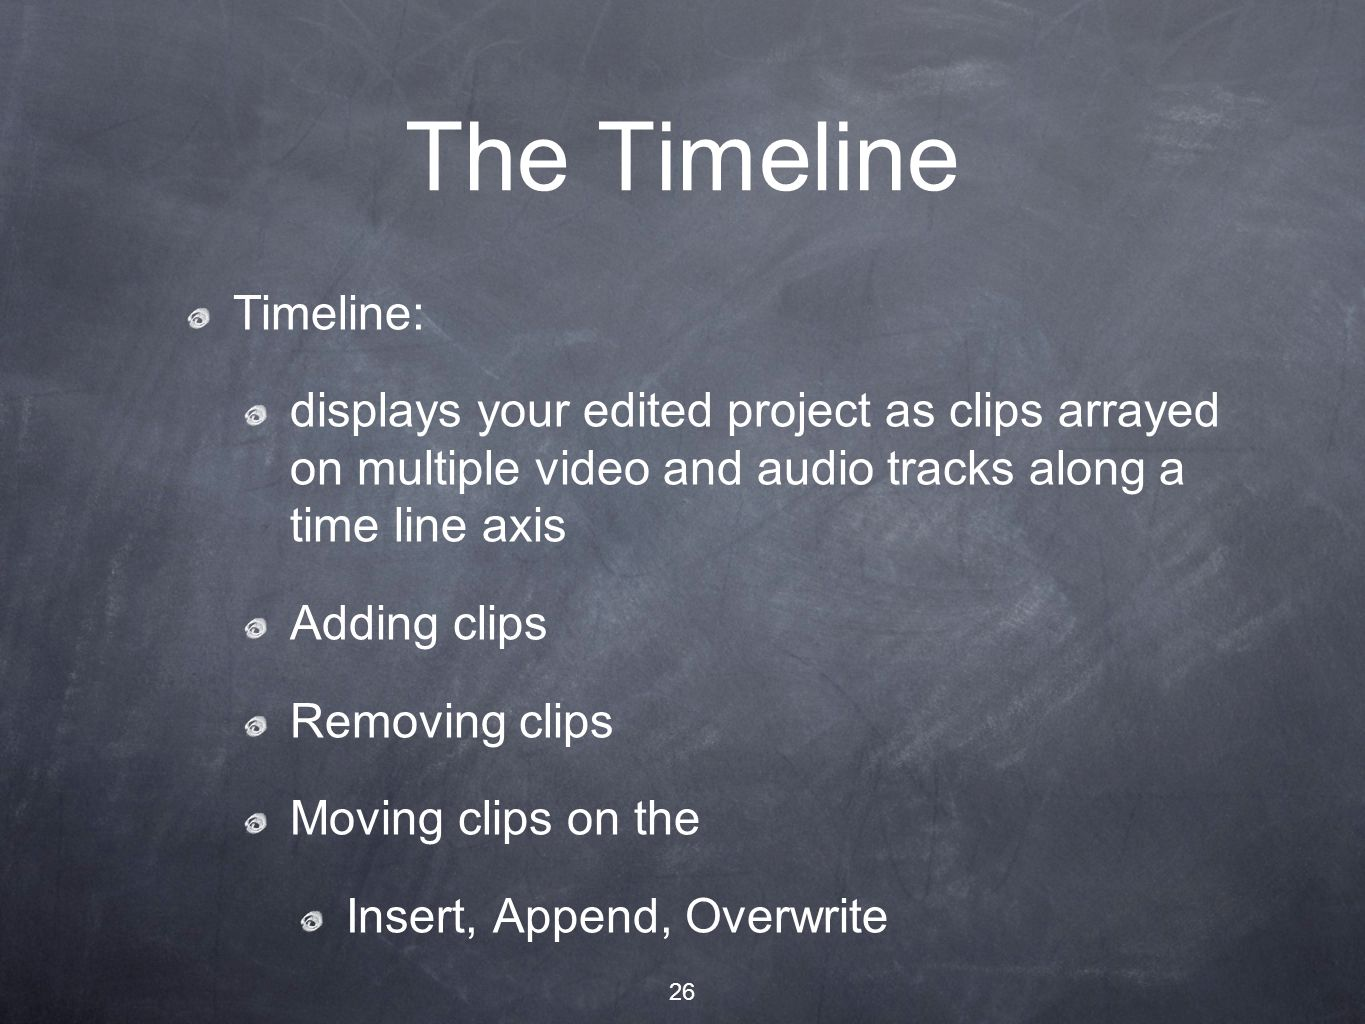 26 The Timeline Timeline: displays your edited project as clips arrayed on multiple video and audio tracks along a time line axis Adding clips Removing clips Moving clips on the Insert, Append, Overwrite